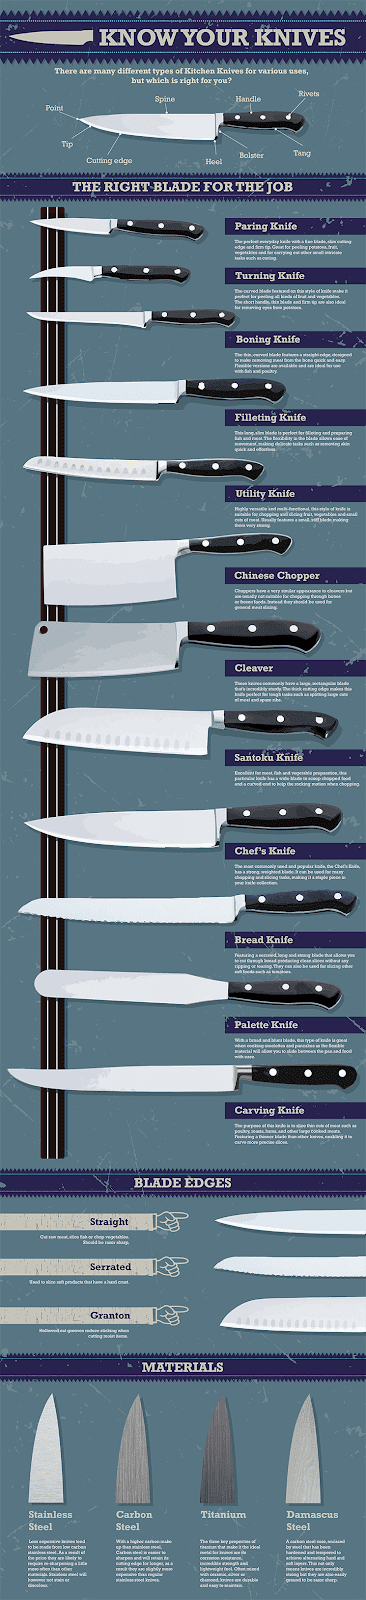 Know Your Knives Infographic